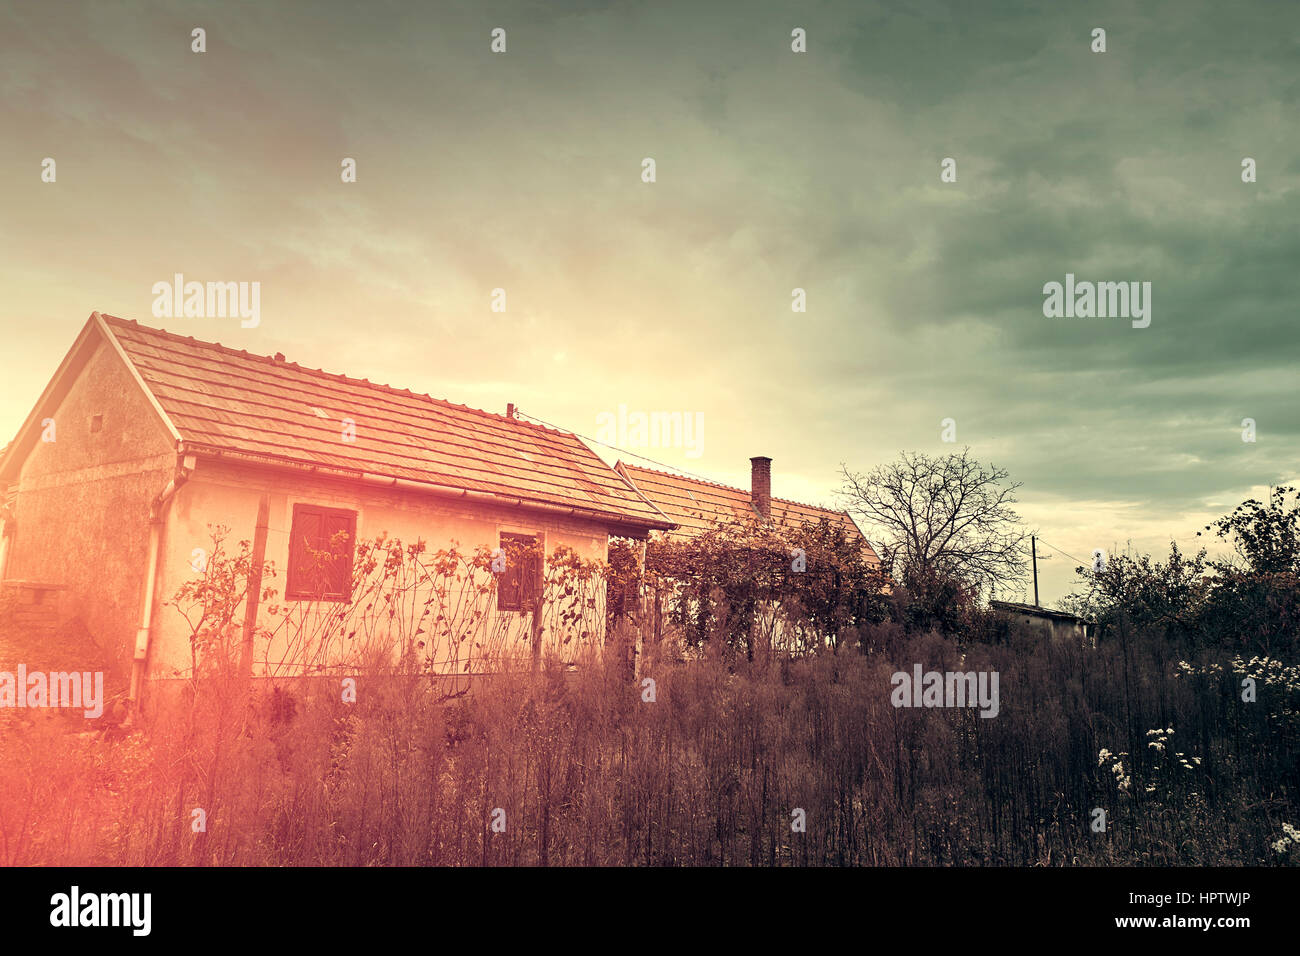 Old spooky abandoned ghost house - Stock Image